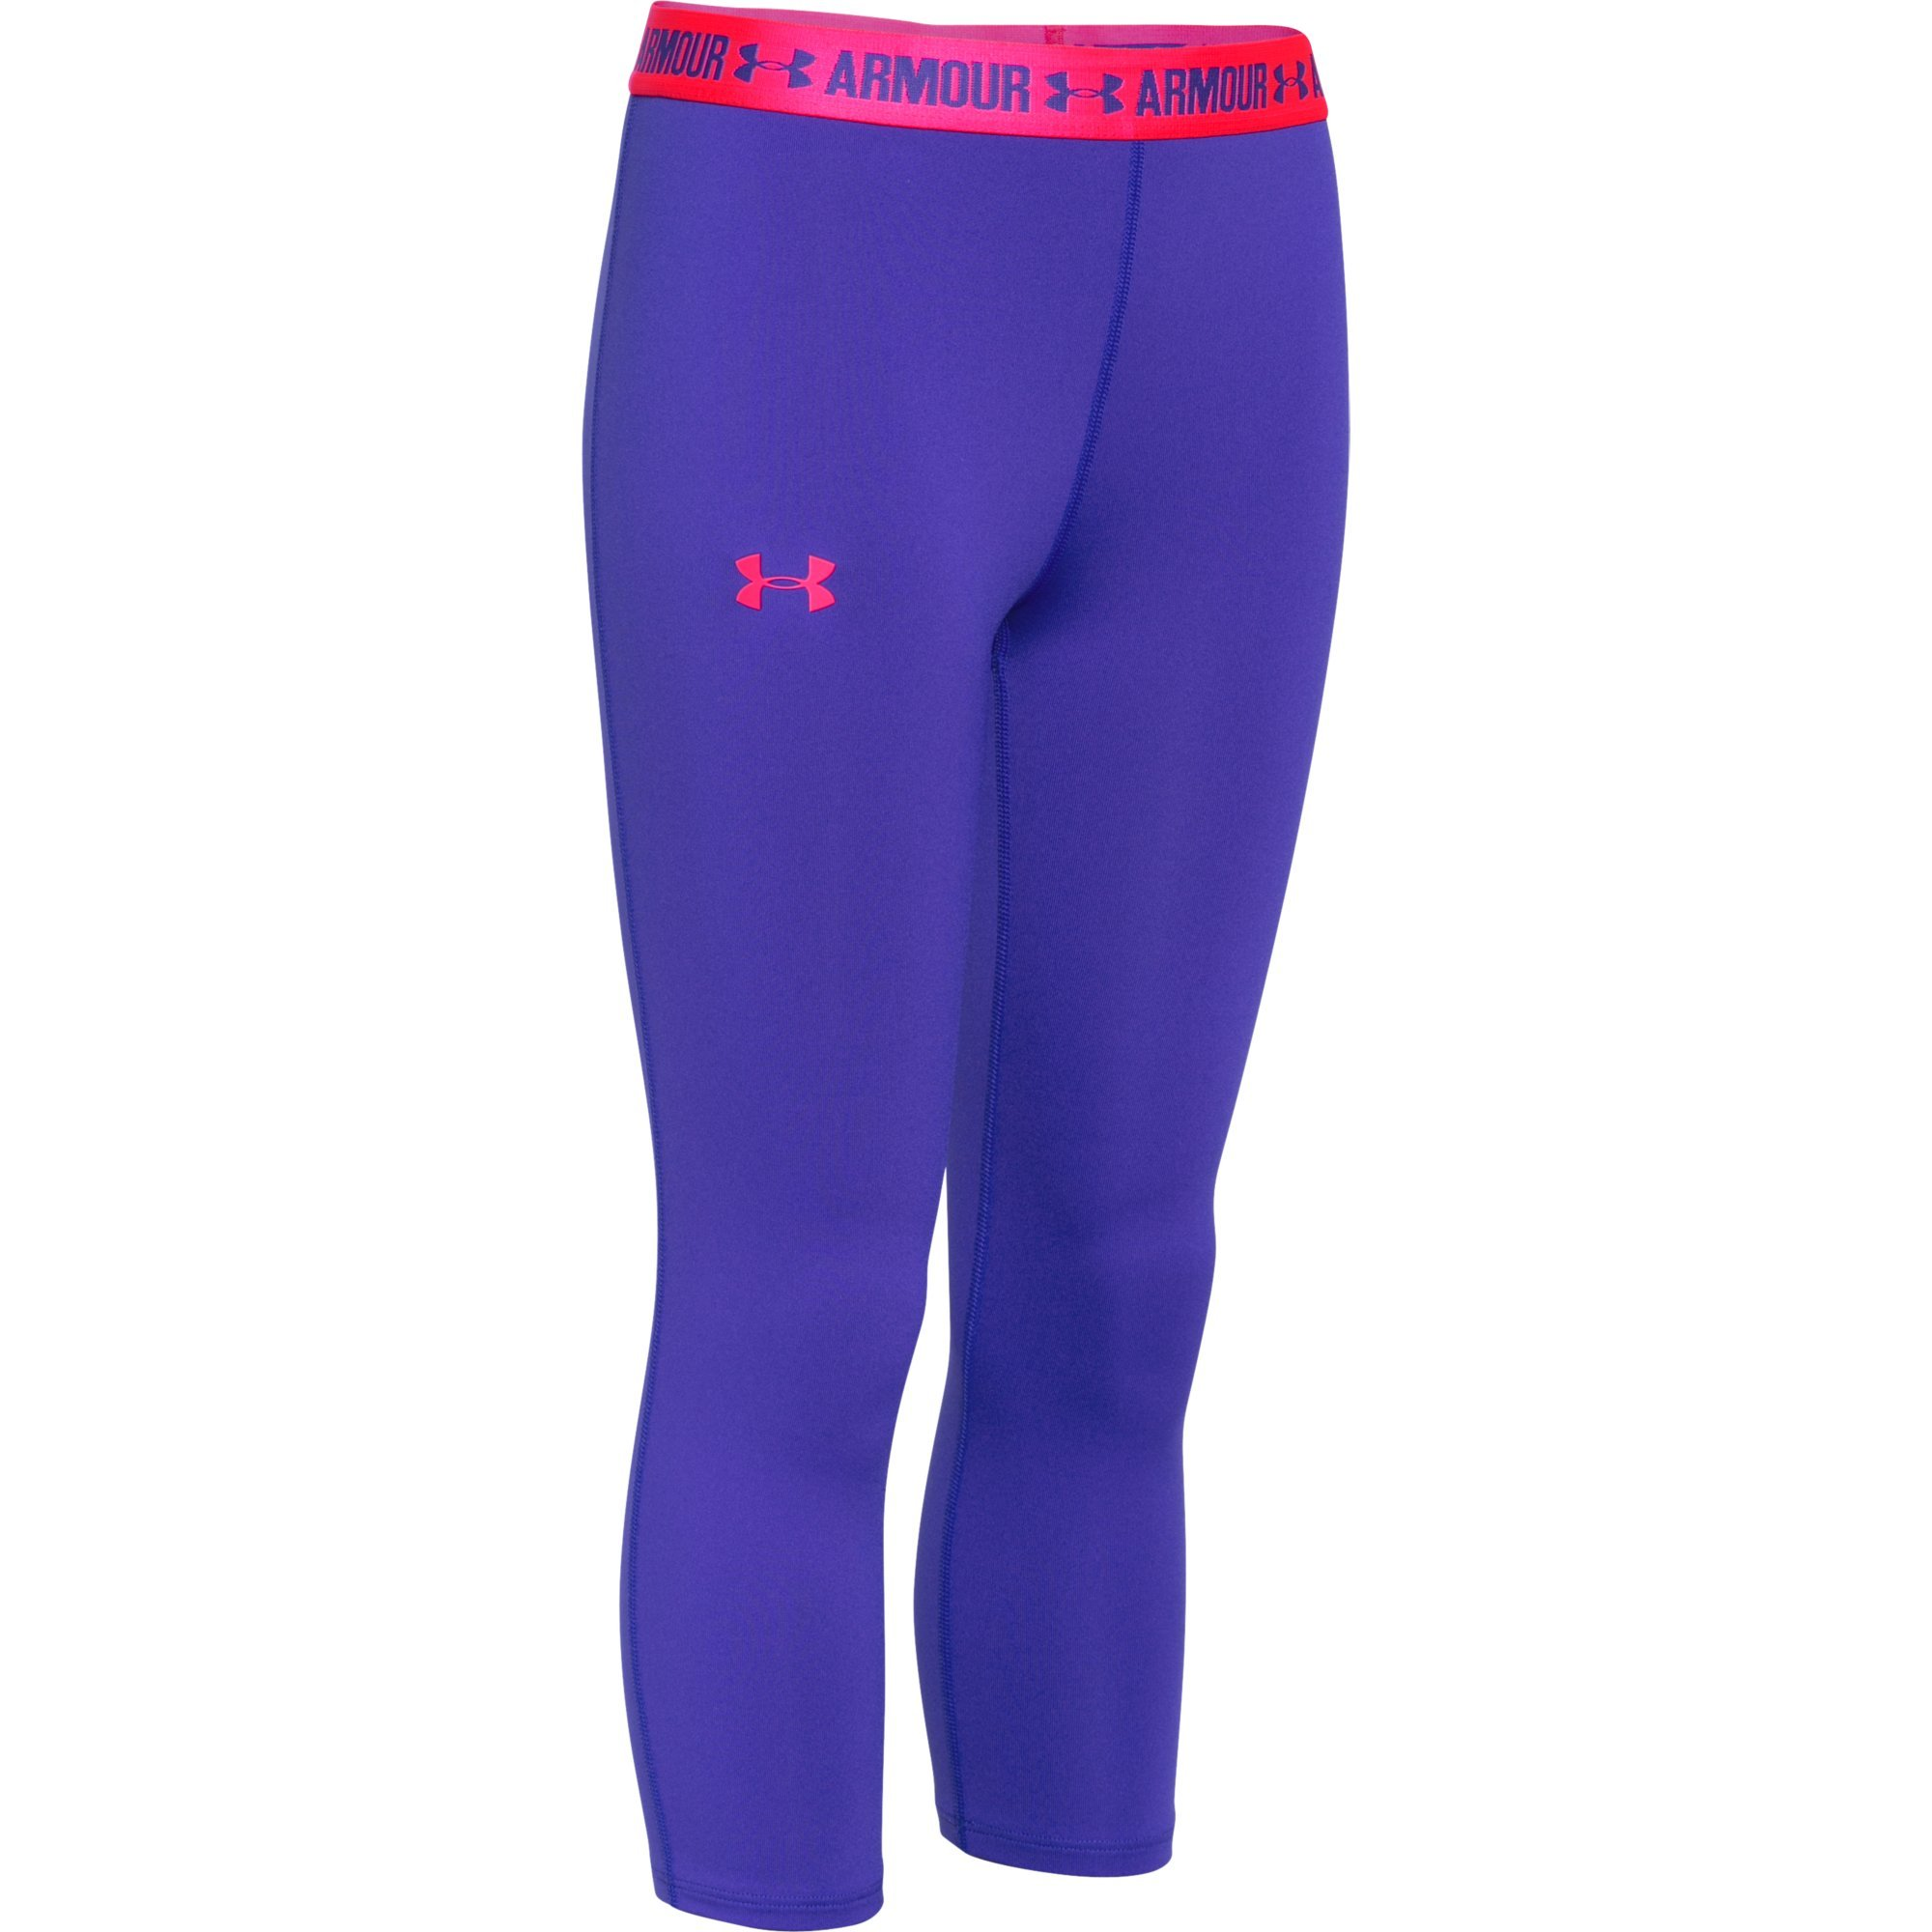 Under Armour Girls HeatGear Armour Solid Capri, Constellation Purple /Harmony Red, Youth Medium